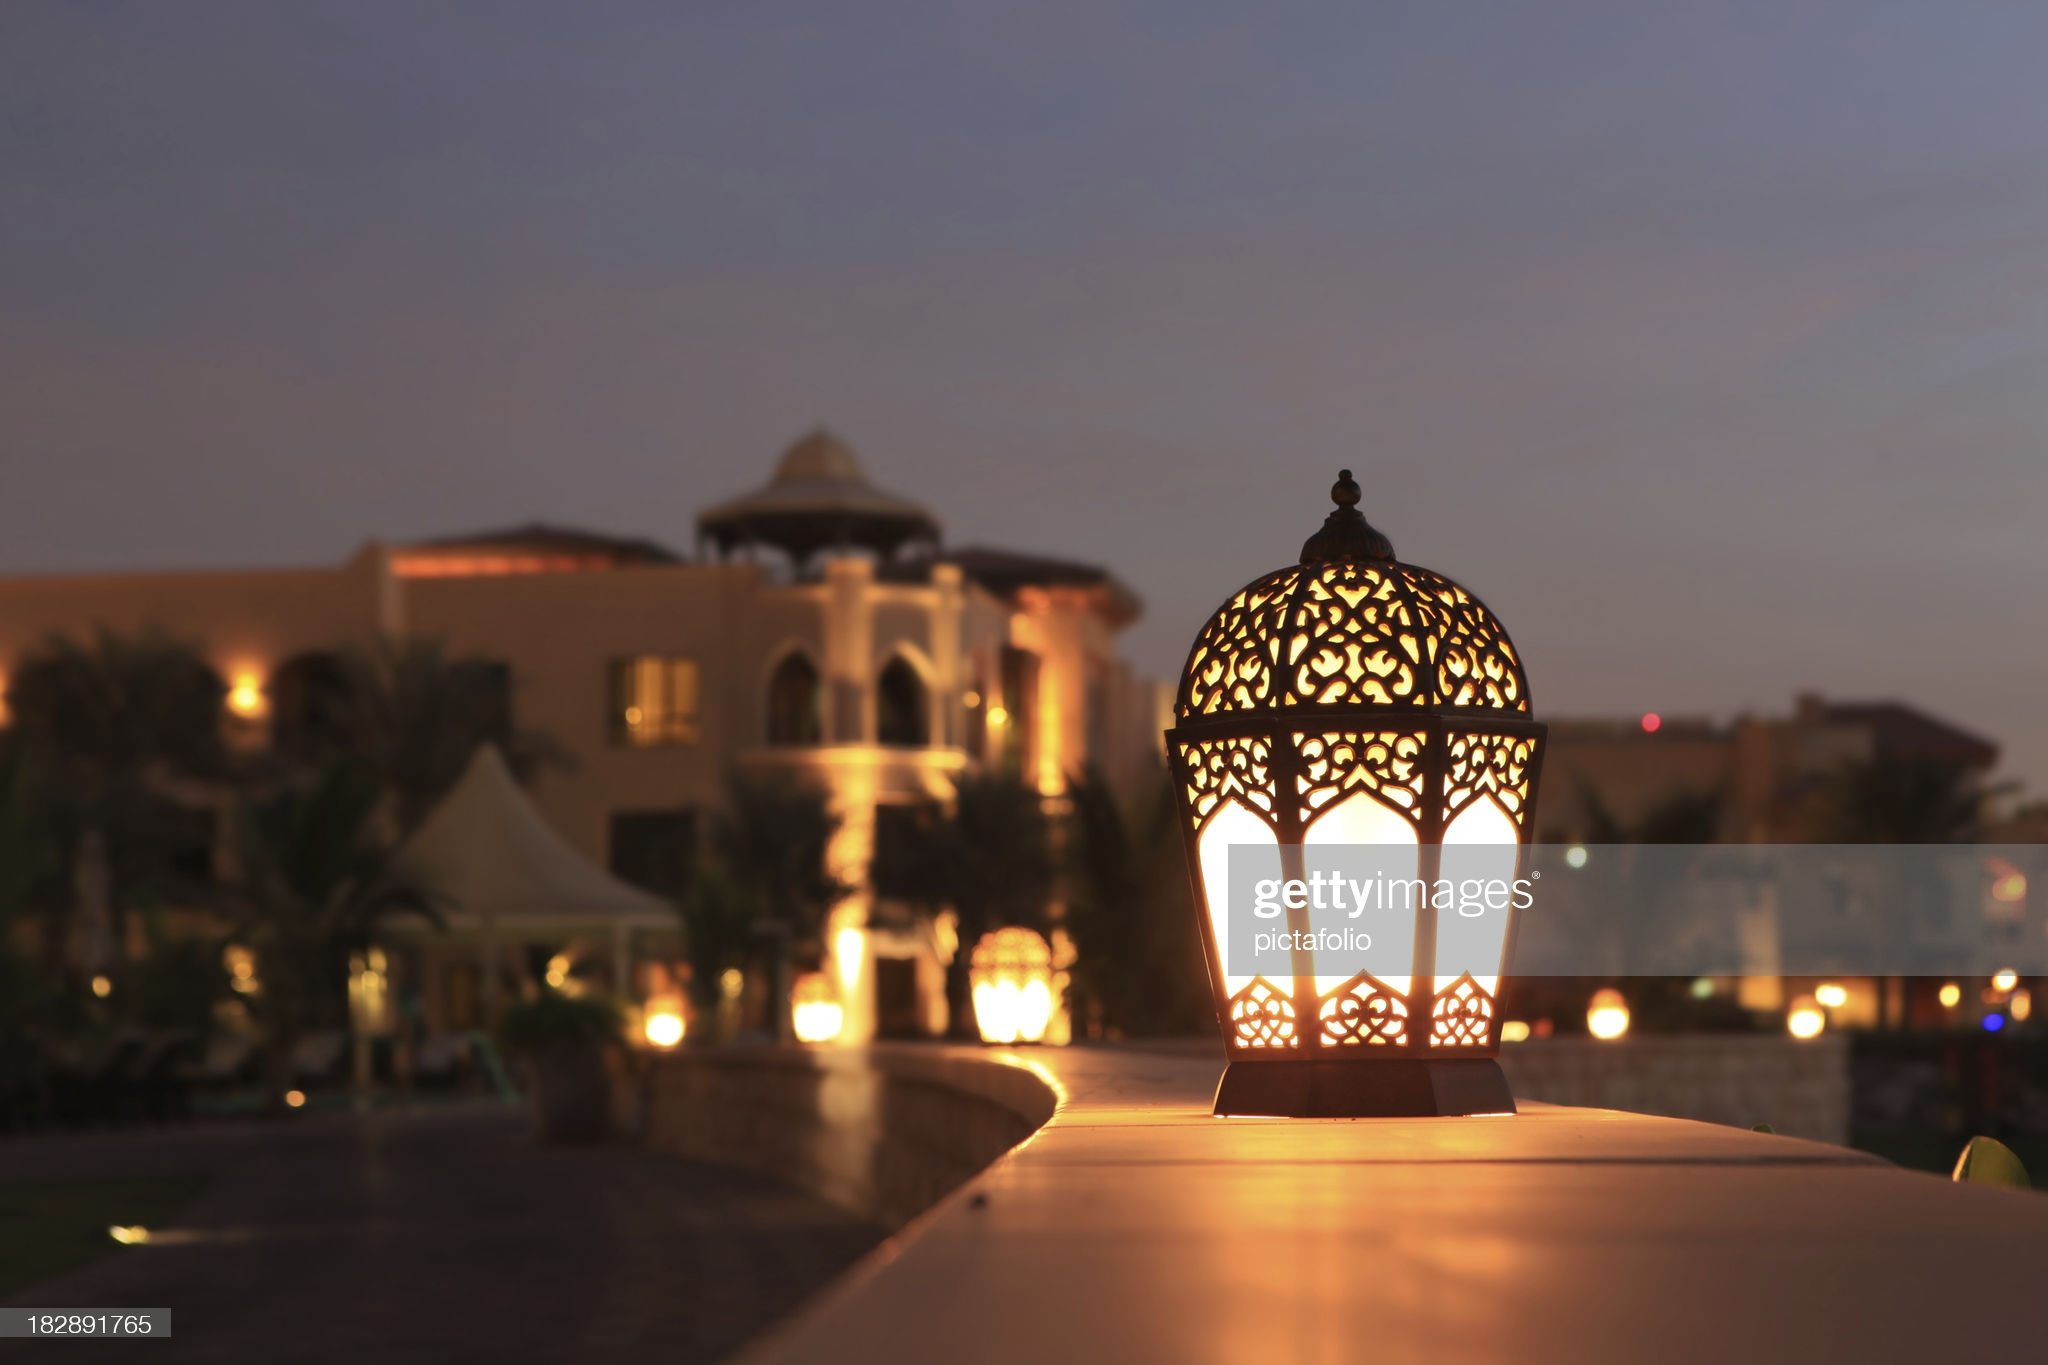 """""""An arabesque lantern lamp Symbol of Ramadan times, also a famous Middle eastern (specially in morocco and Egypt) lighting decoration item..Some copy space was left up to fit greeting or title textMore Similar and Arabia Related.."""""""